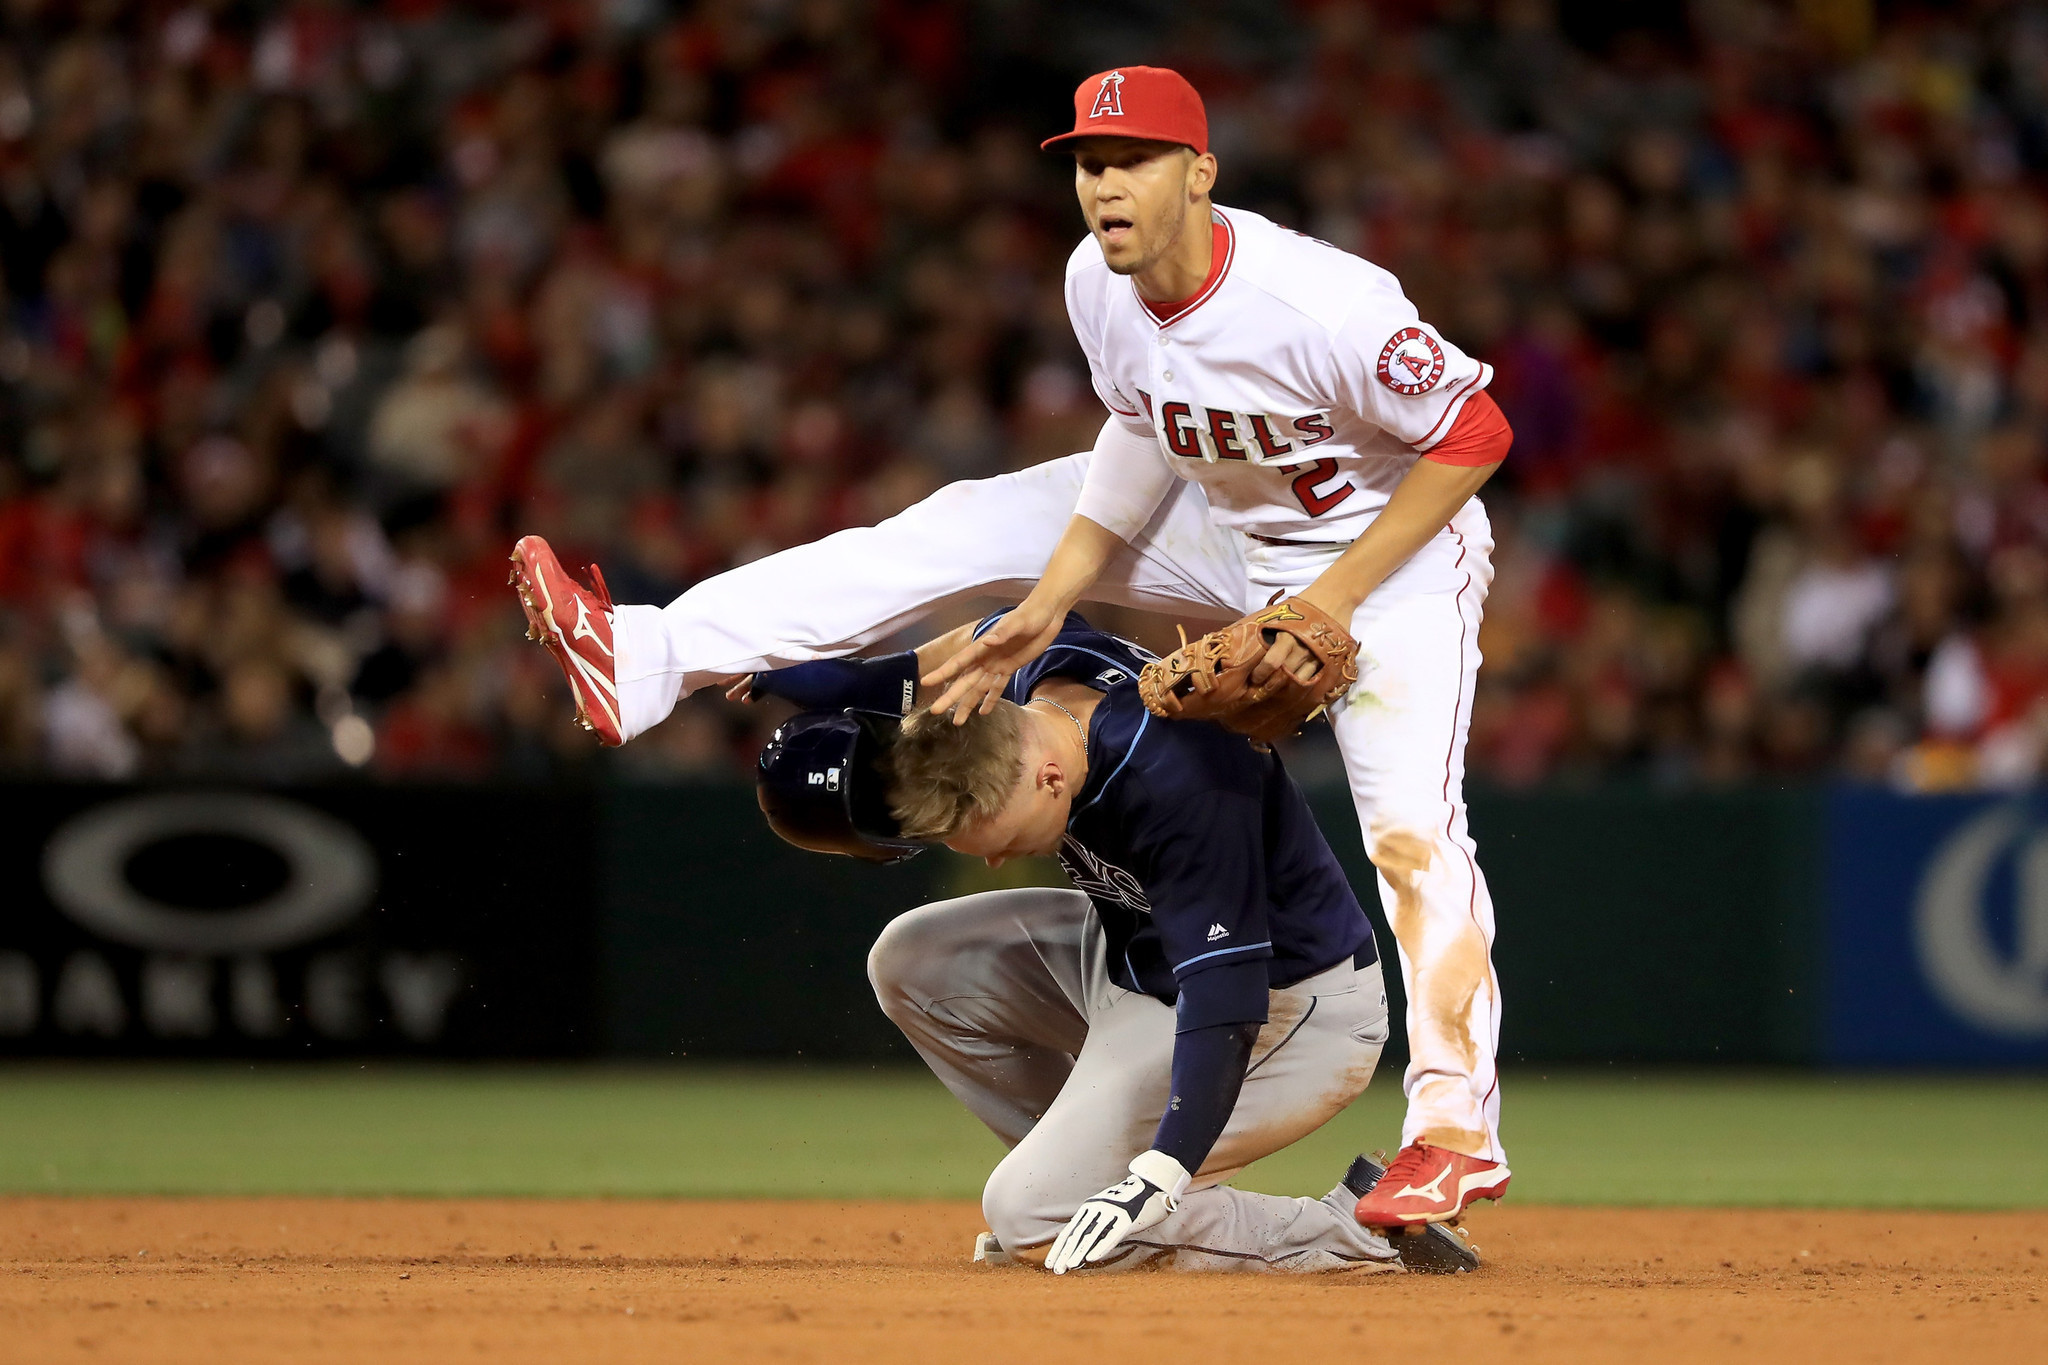 La-sp-sn-angels-andrelton-simmons-surgery-20160509